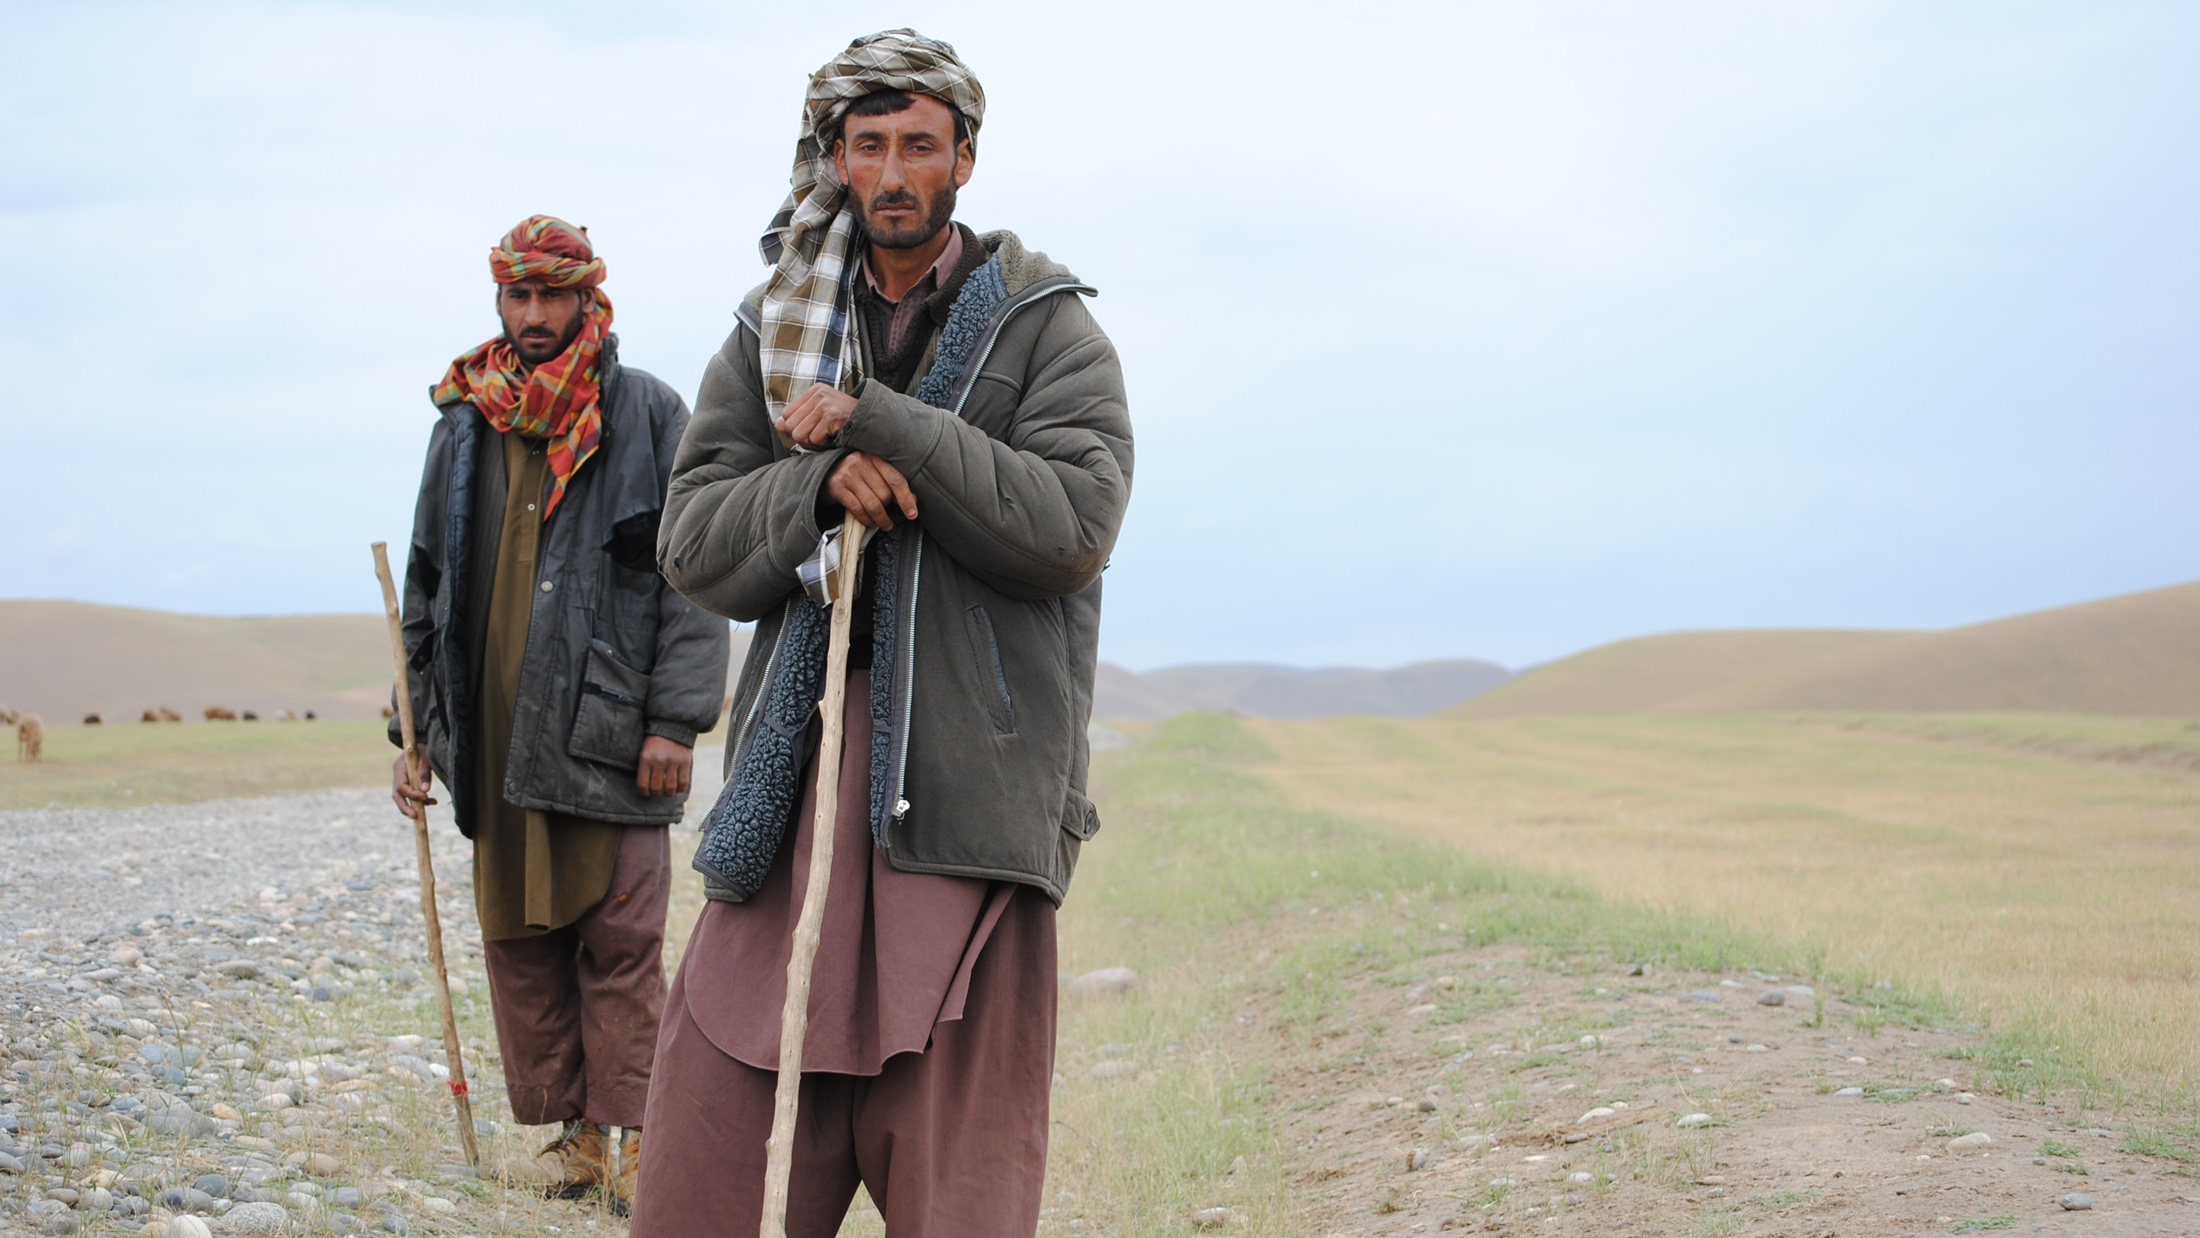 Semi-nomadic Kuchis say they are getting pushed off their rangeland with land rights still not clearly established in Afghanistan